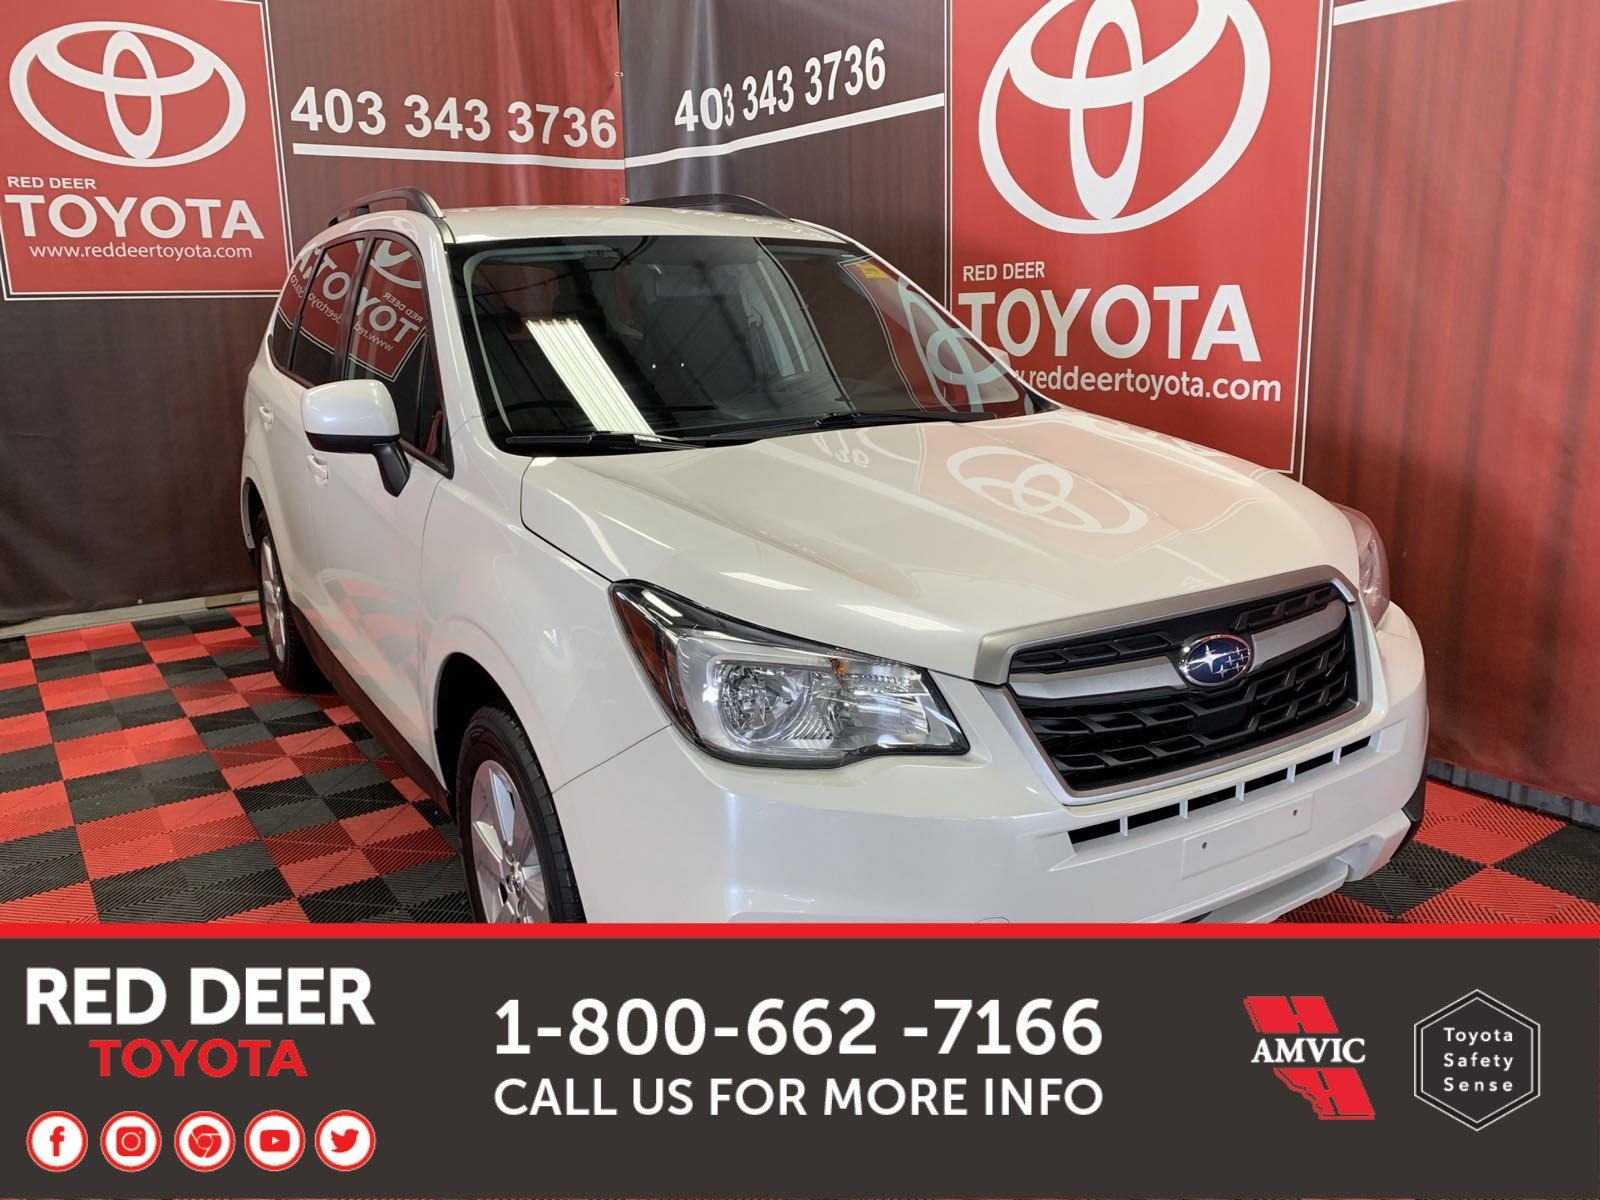 Pre-Owned 2017 Subaru Forester i Convenience